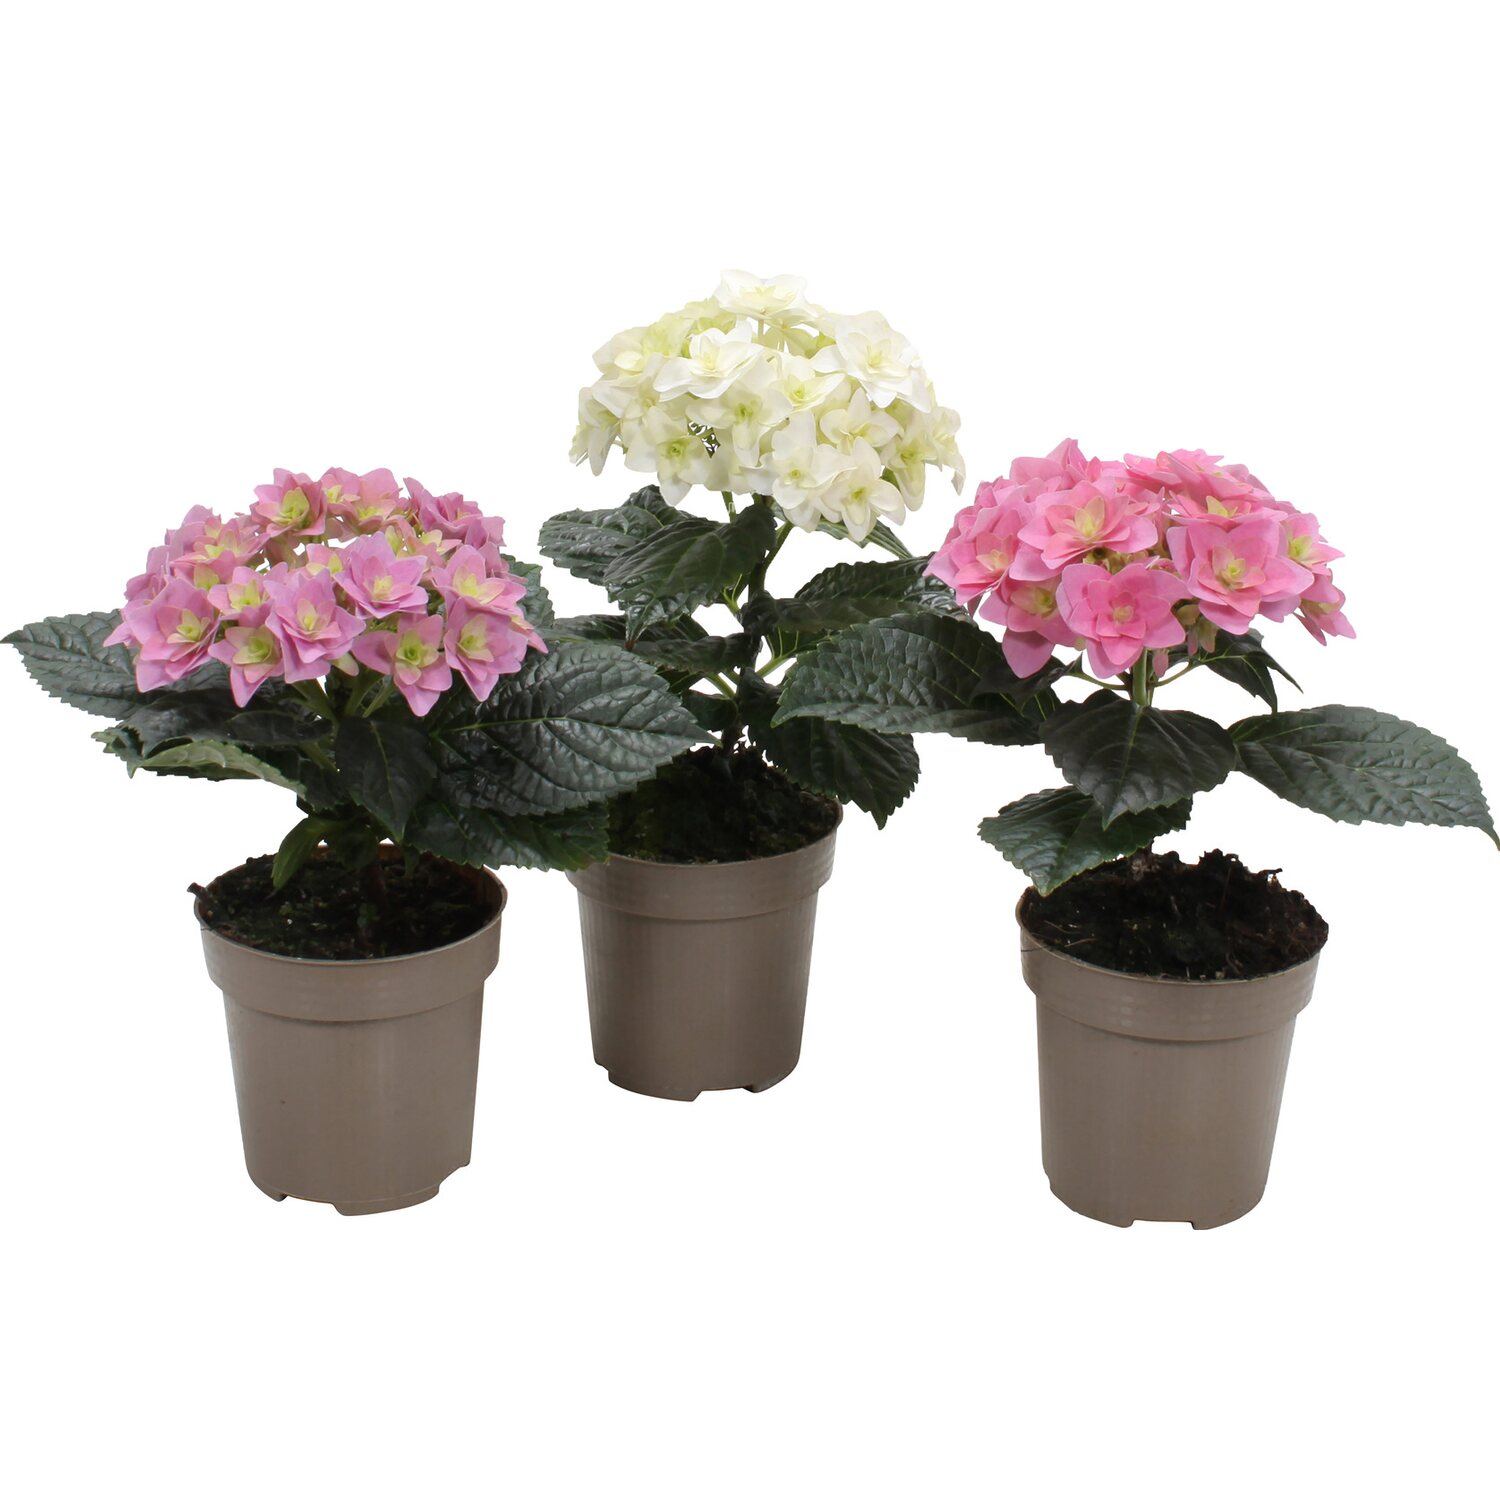 hortensie hy pe solomia double dutch topf ca 9 5 cm hydrangea macrophylla kaufen bei obi. Black Bedroom Furniture Sets. Home Design Ideas